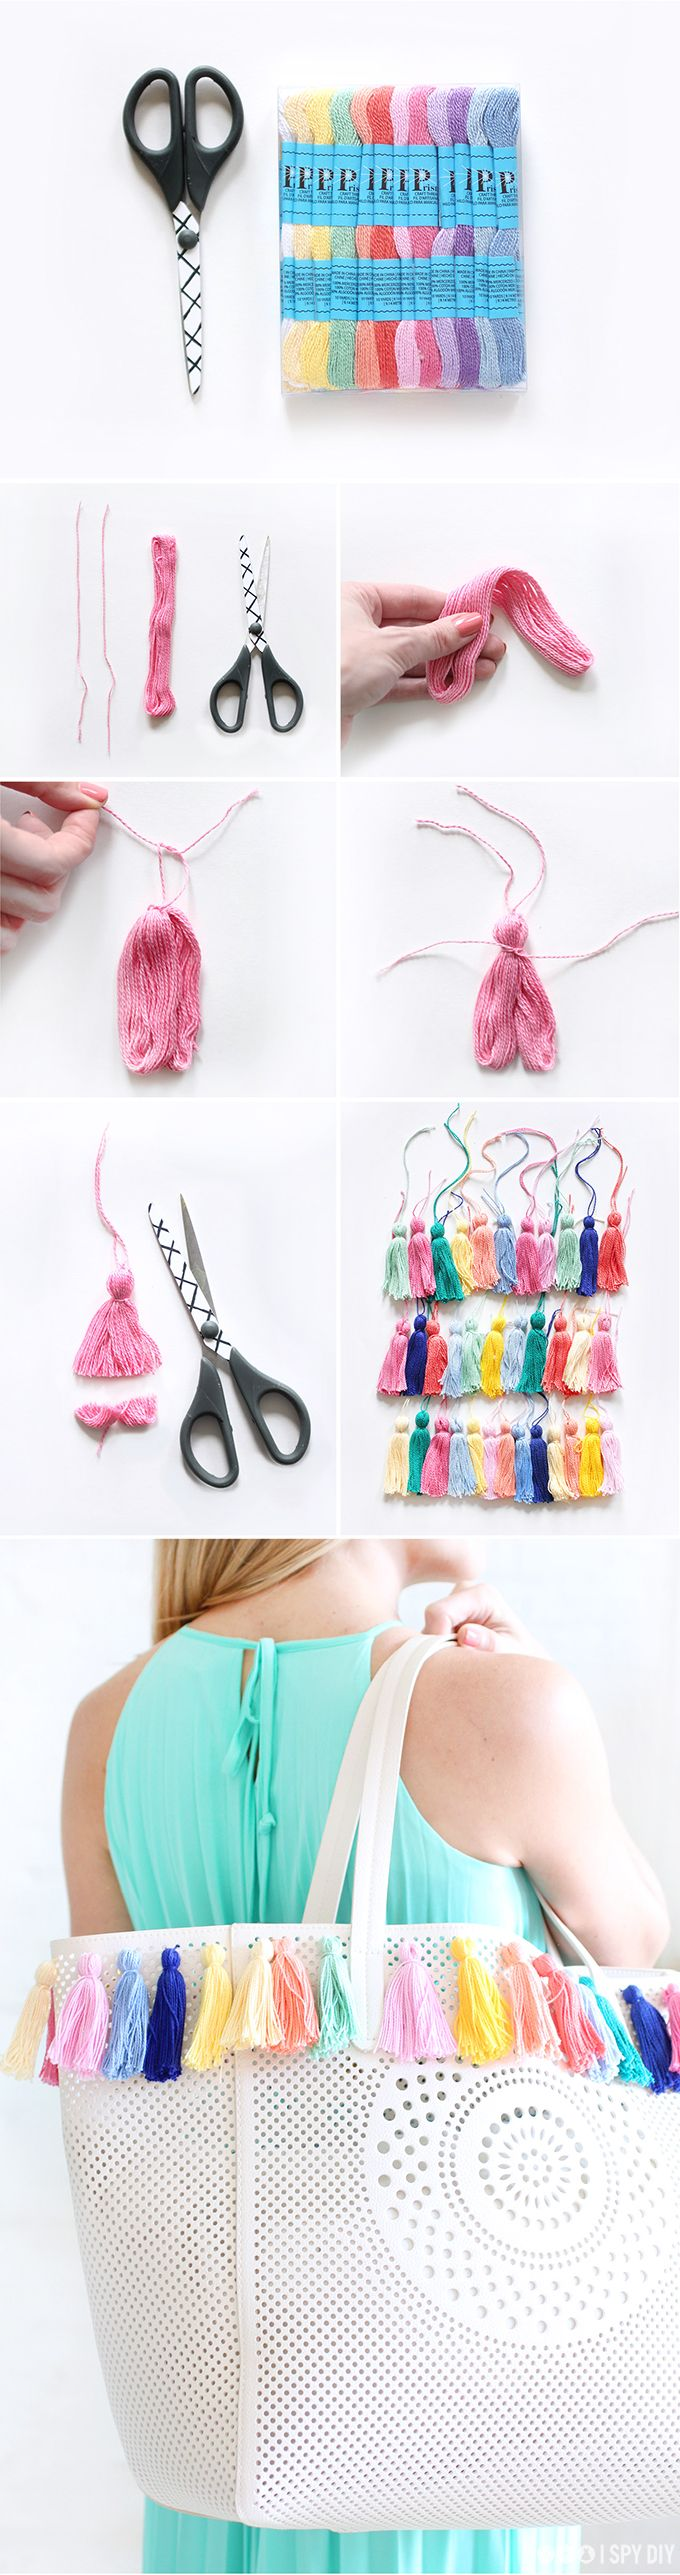 » MY DIY | Pastel Tassel Beach Bag #DIY #Home #Garden #doityourself #instruction #instuctions #building #design #designs #instruction #idea #ideas #hobby